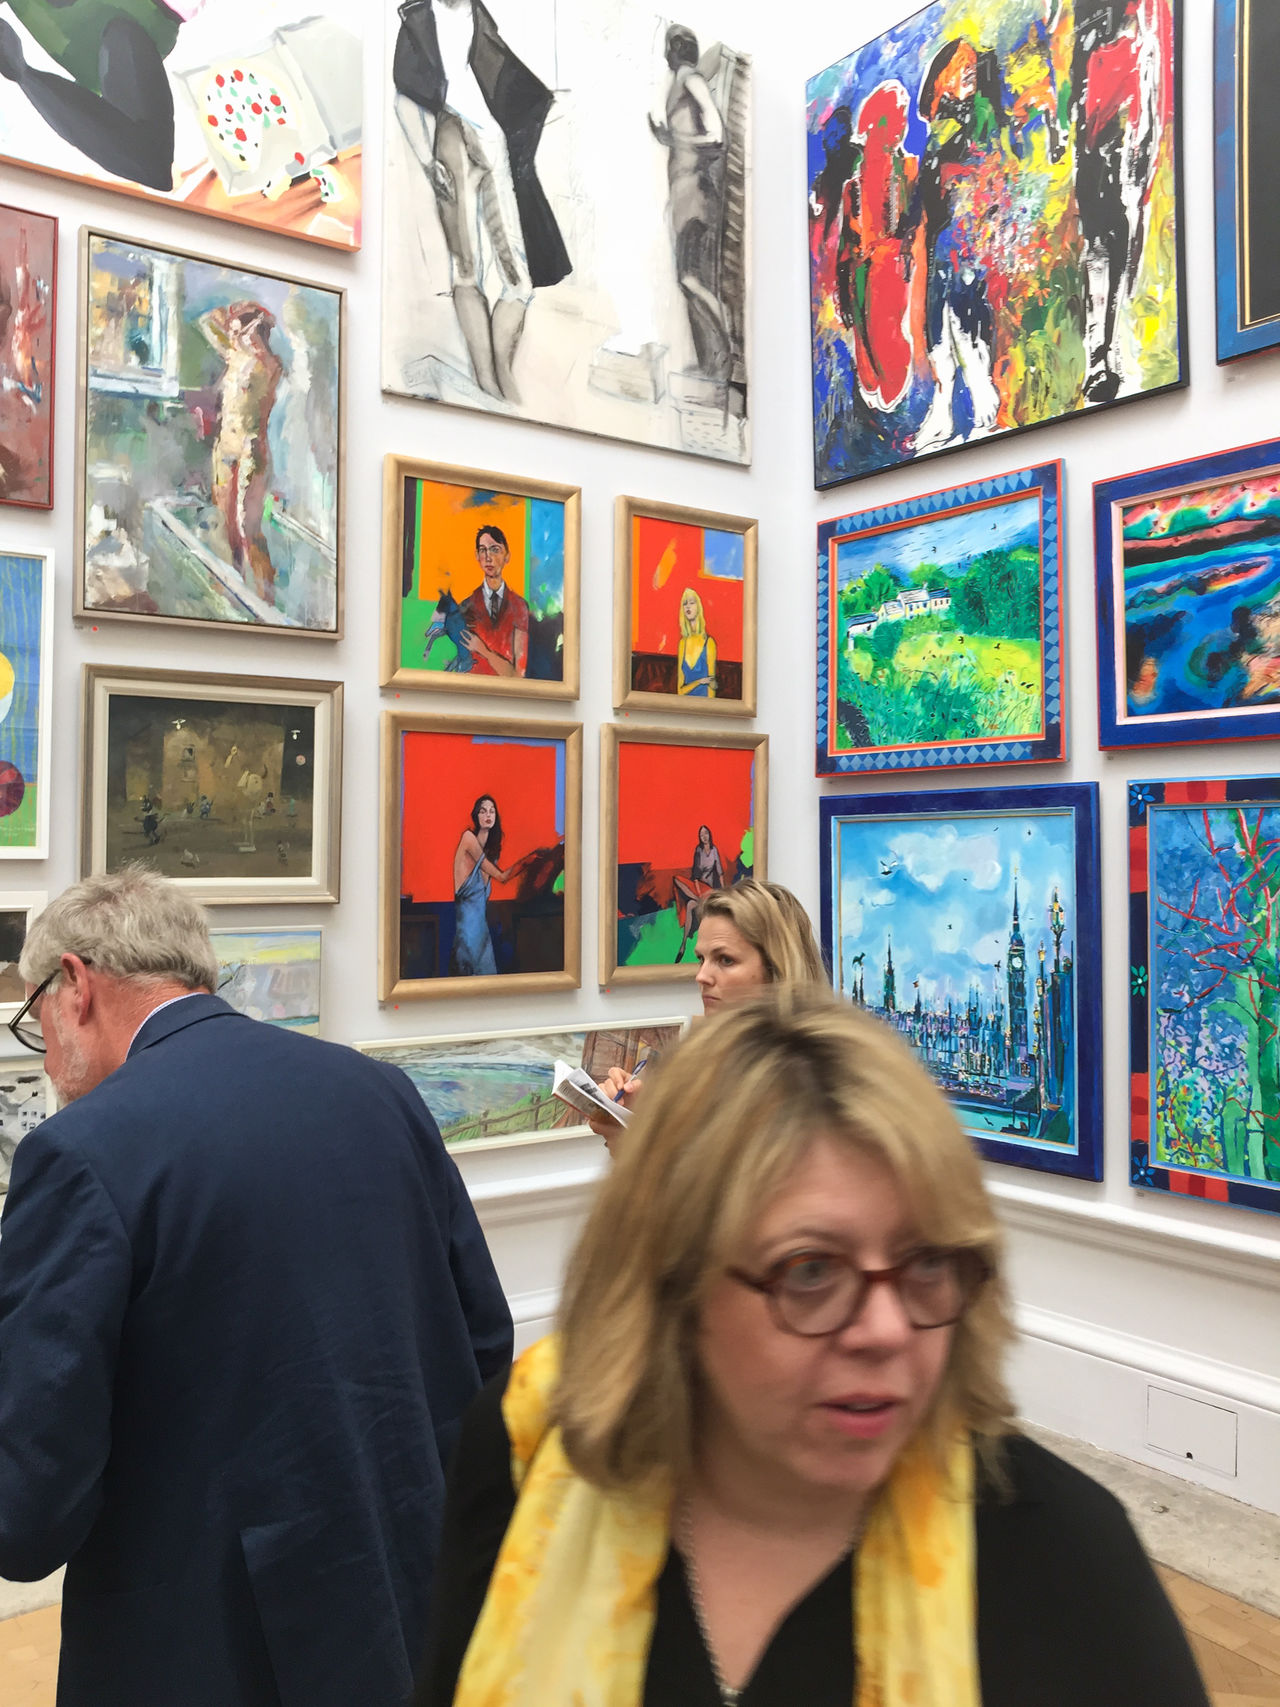 Framed works of art hang at the Royal Academy of Arts in London for the Summer 2017 Exhibition of emerging and established artists. People have come to view the show and purchase the pieces on display. Framed London Royal Academy Of Arts Show Art Editorial  Eyeglasses  Gallery Indoors  Men Painting People Real People Women Young Women